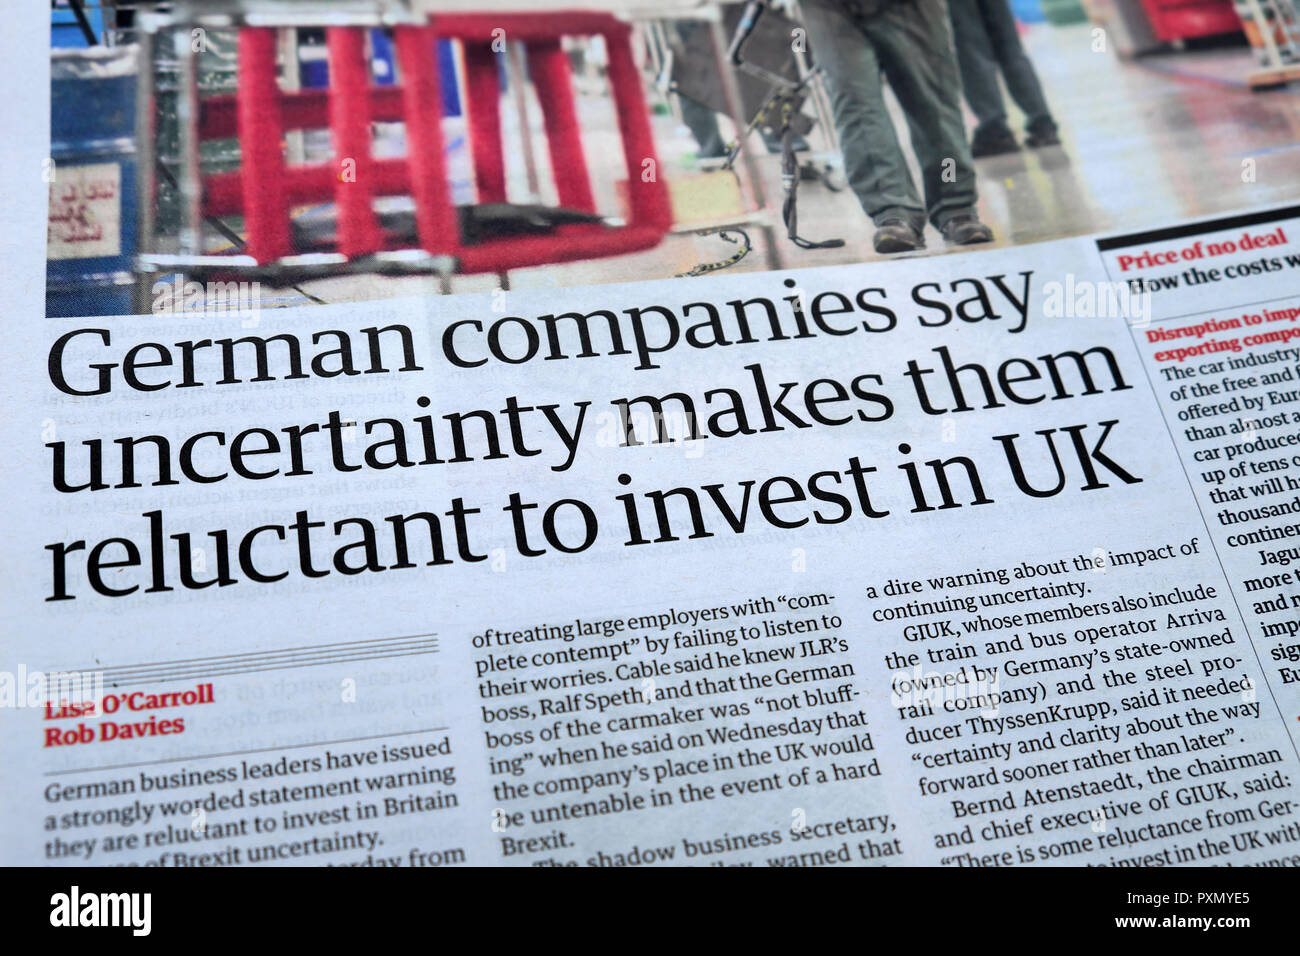 Guardian newspaper article 'German companies say uncertainty makes them reluctant to invest in UK' July 2018 - Stock Image